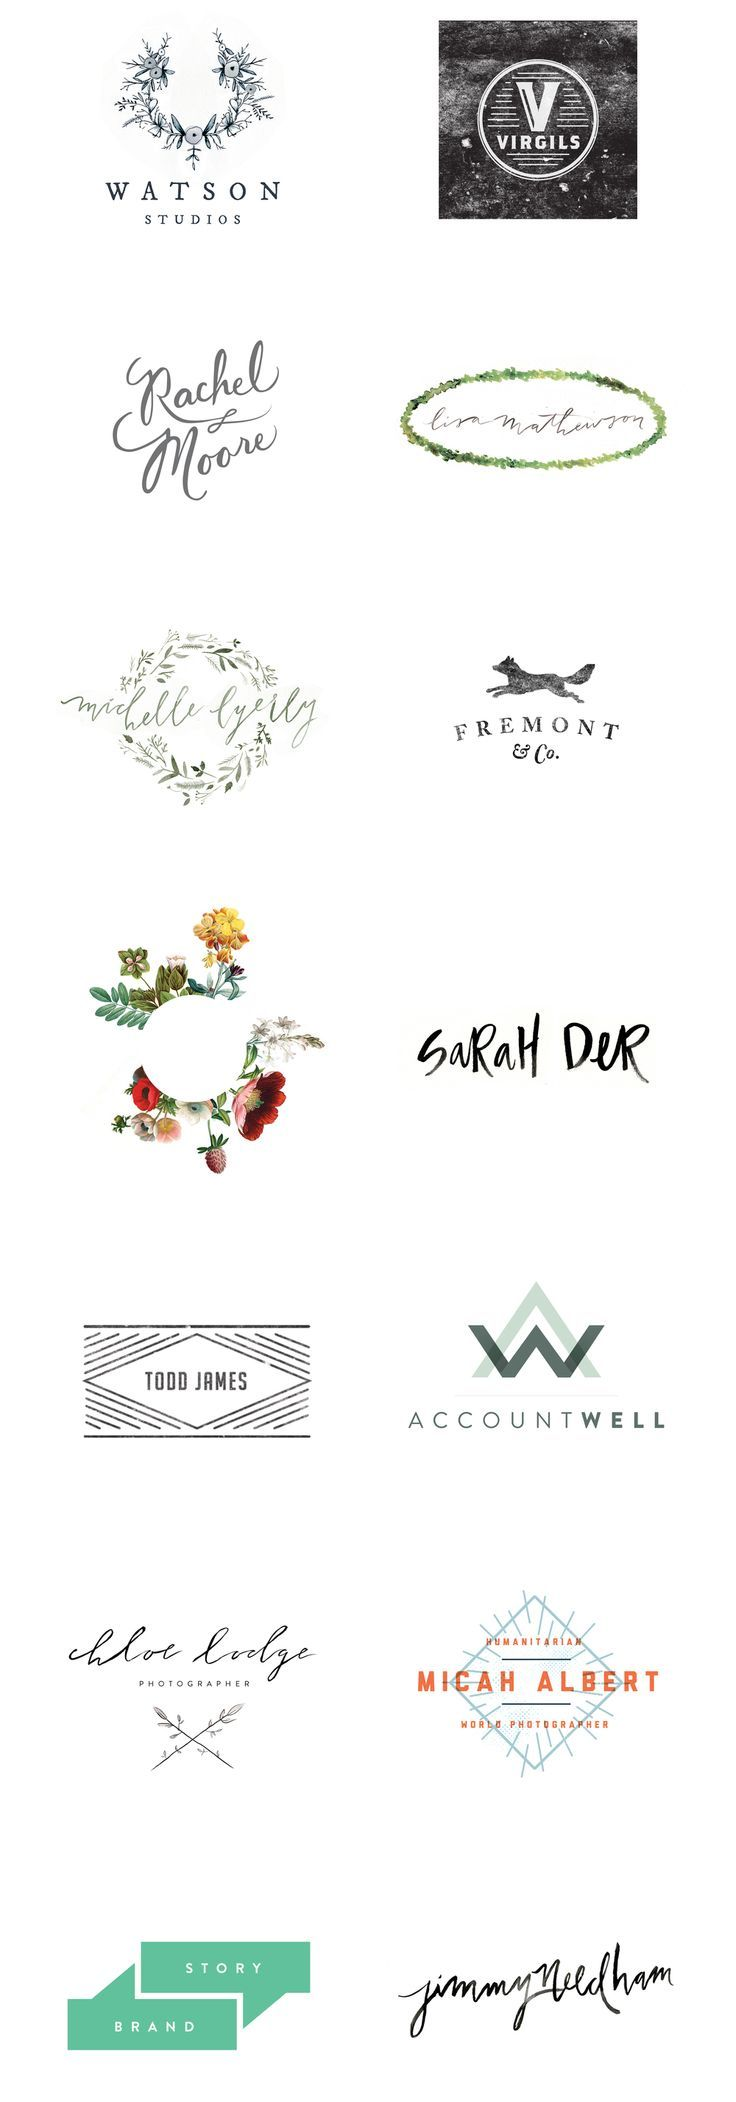 I like the clean and simple feel of these logos- they could easily be transferred to stationary, business cards, etc: